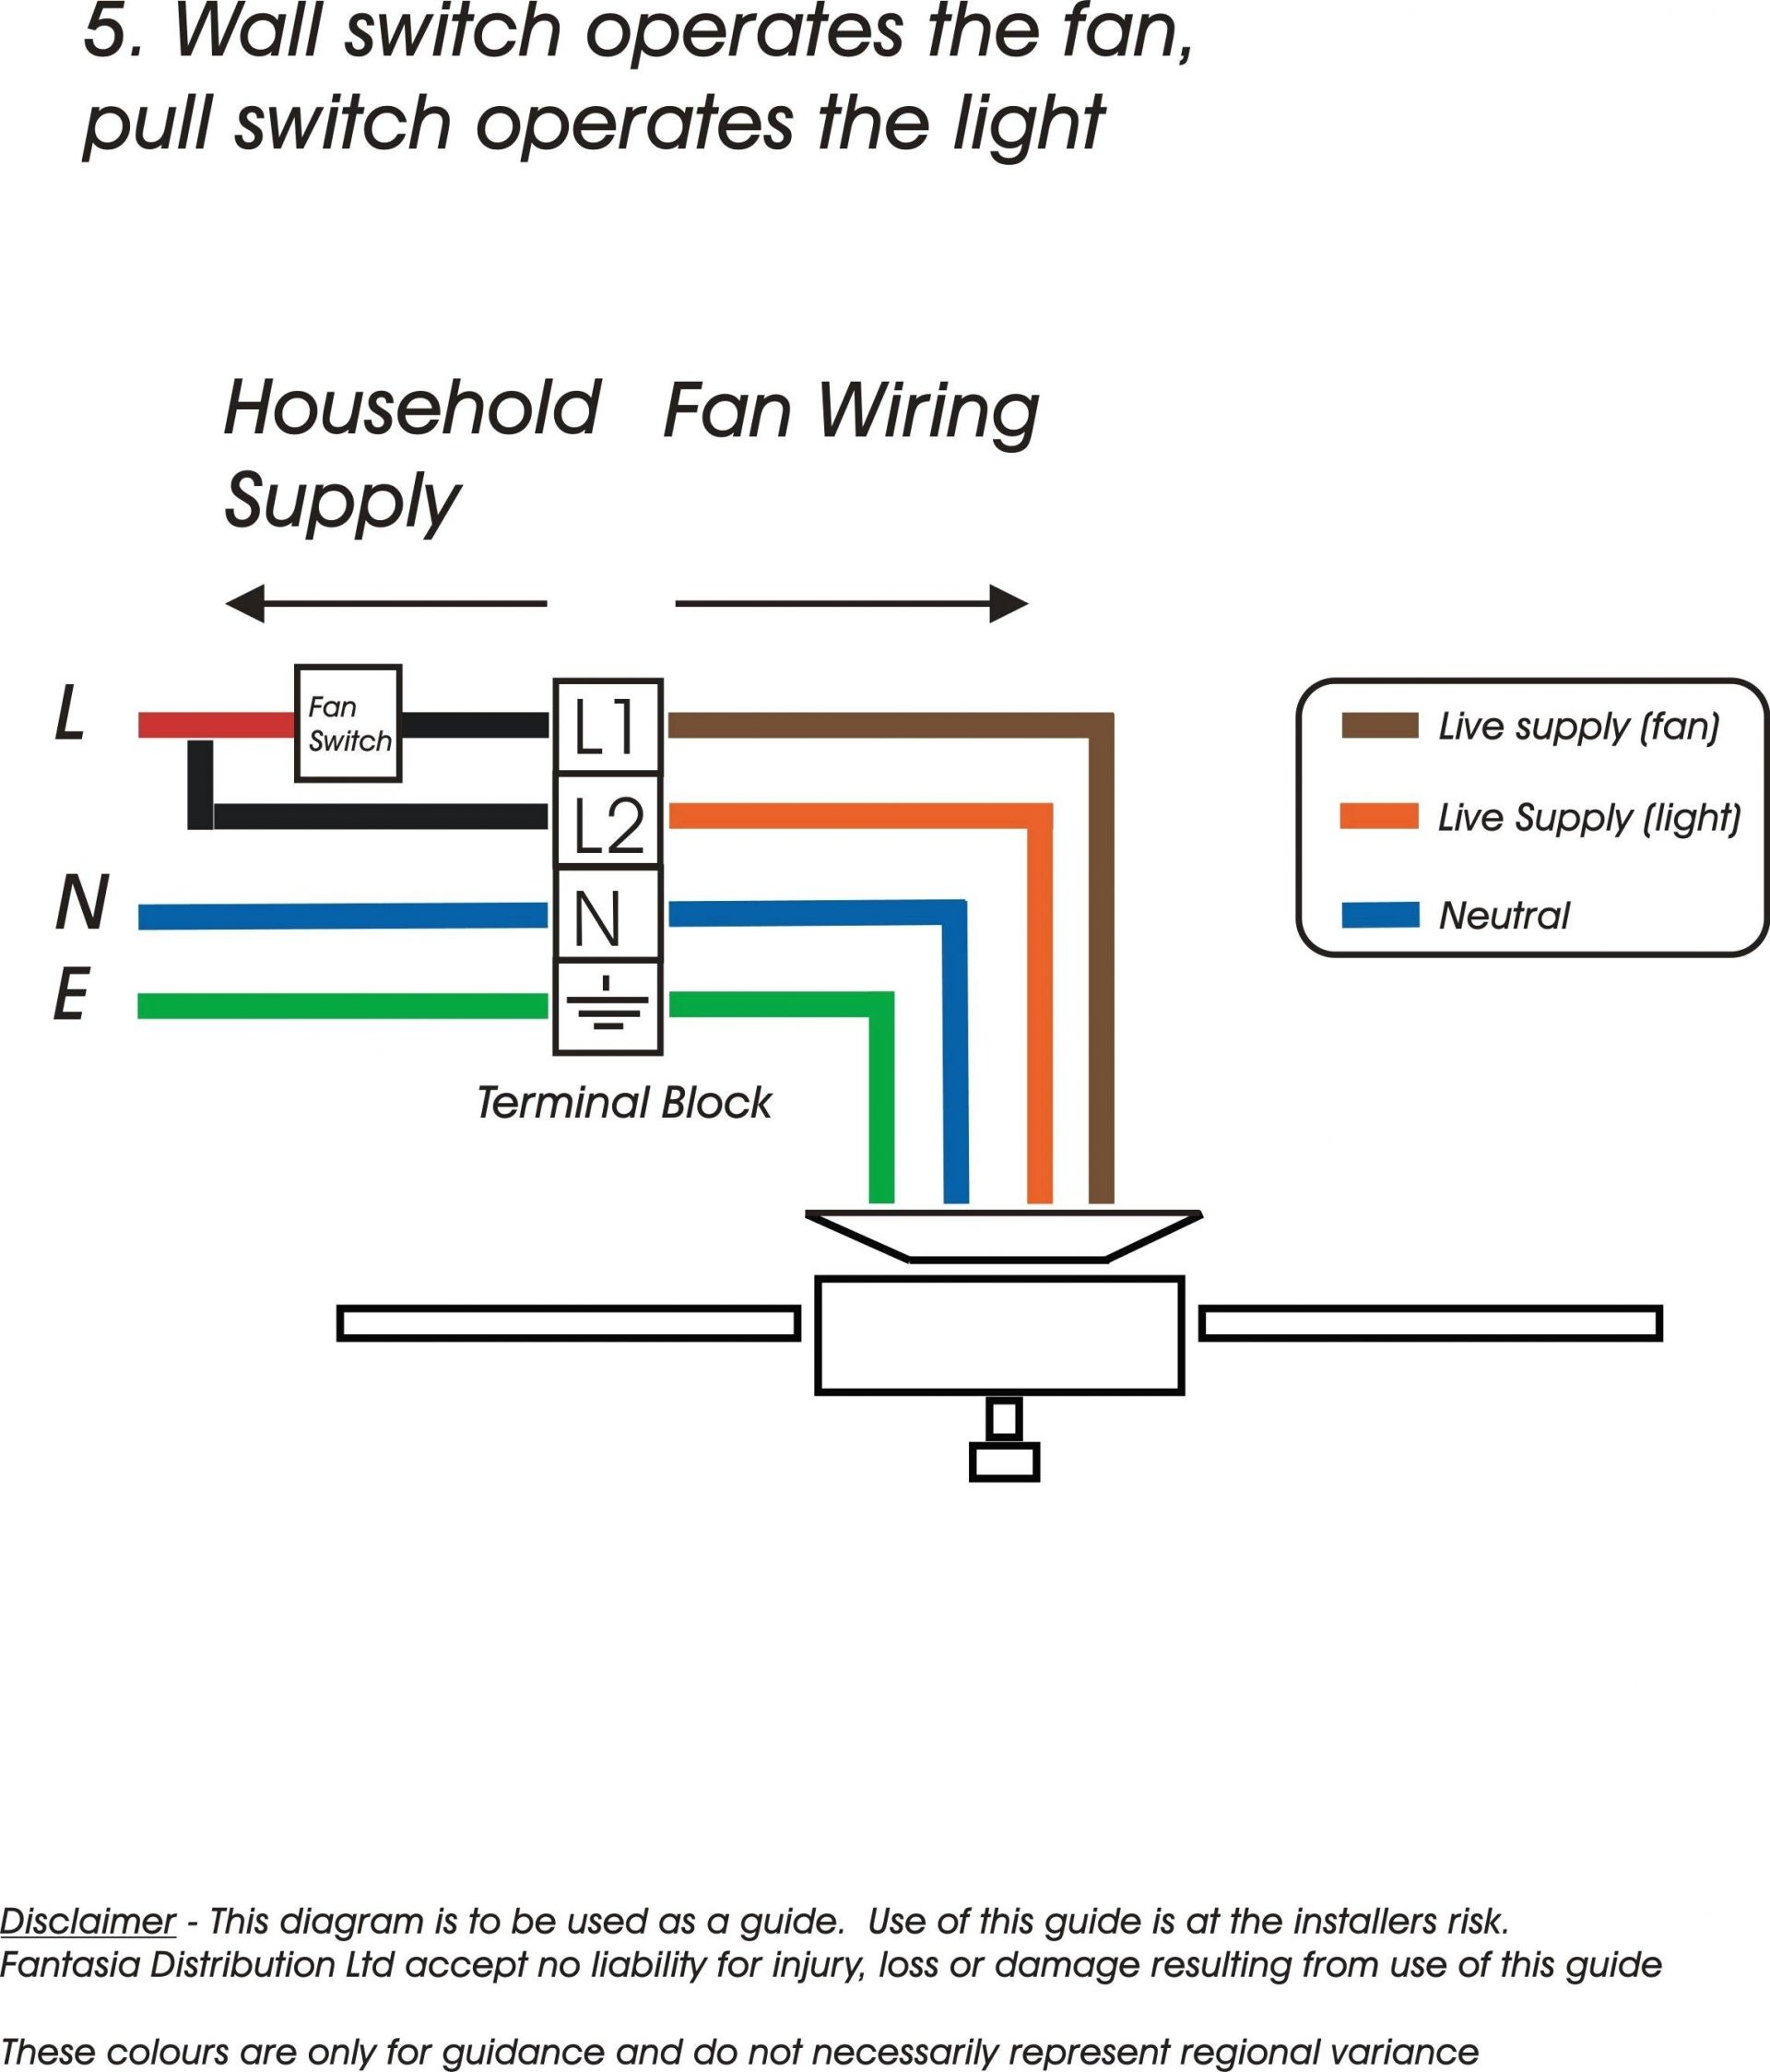 Lithonia T8 Wiring Diagram Roswell Detroit Memphis Lighting Liry On